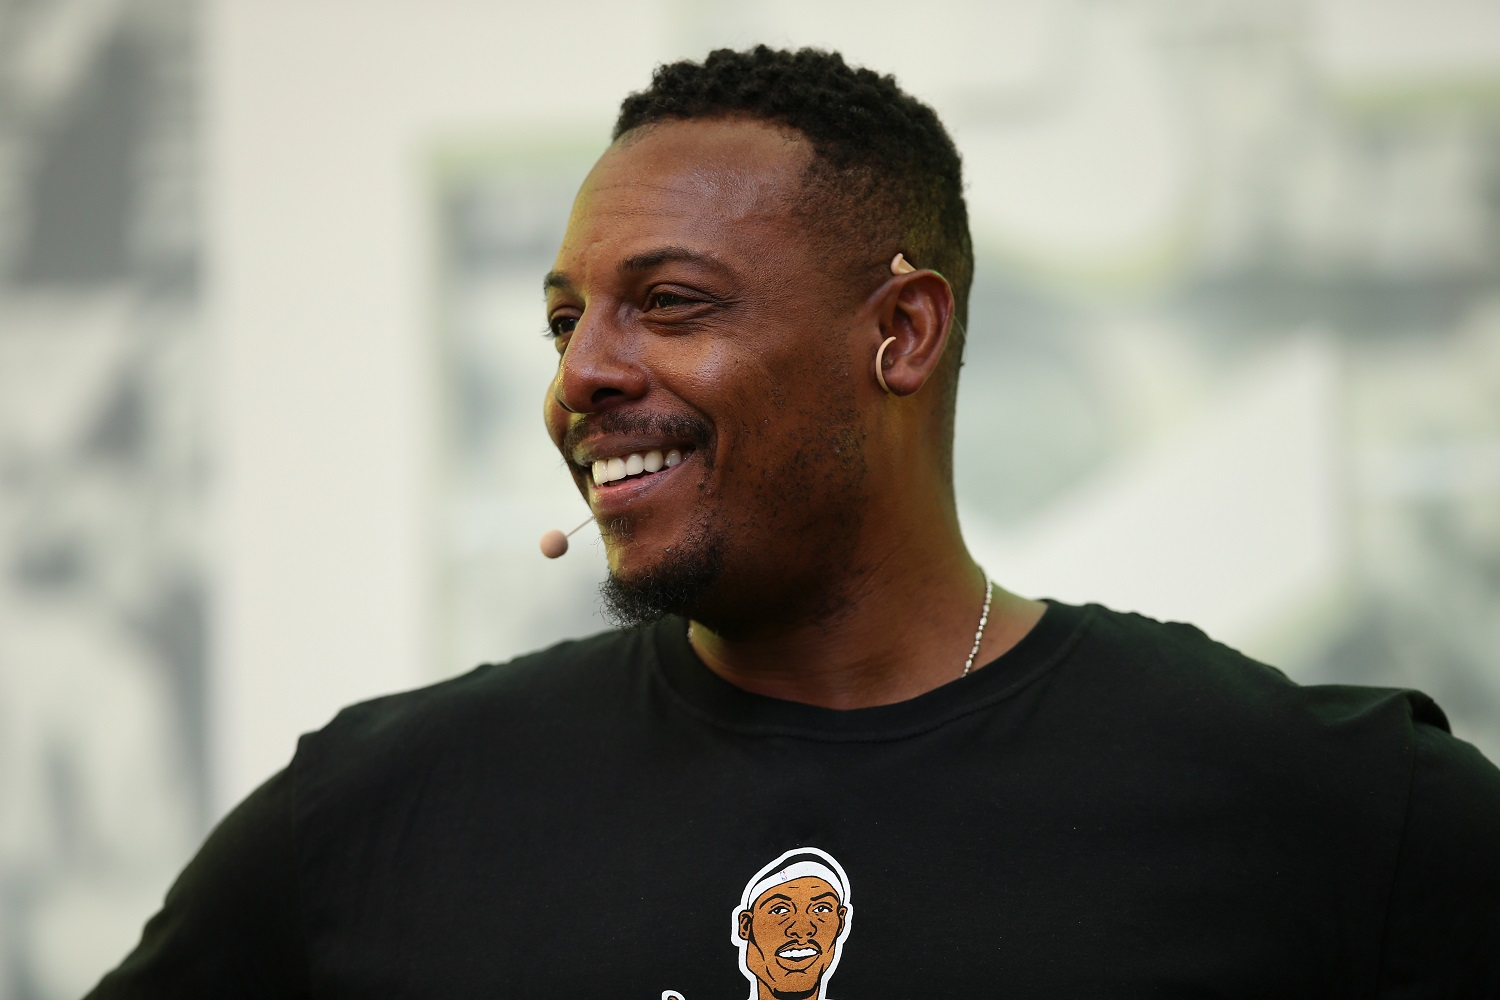 Paul Pierce moved directly into a career as an NBA analyst for ESPN following his retirement as a player. | Jason McCawley/Getty Images